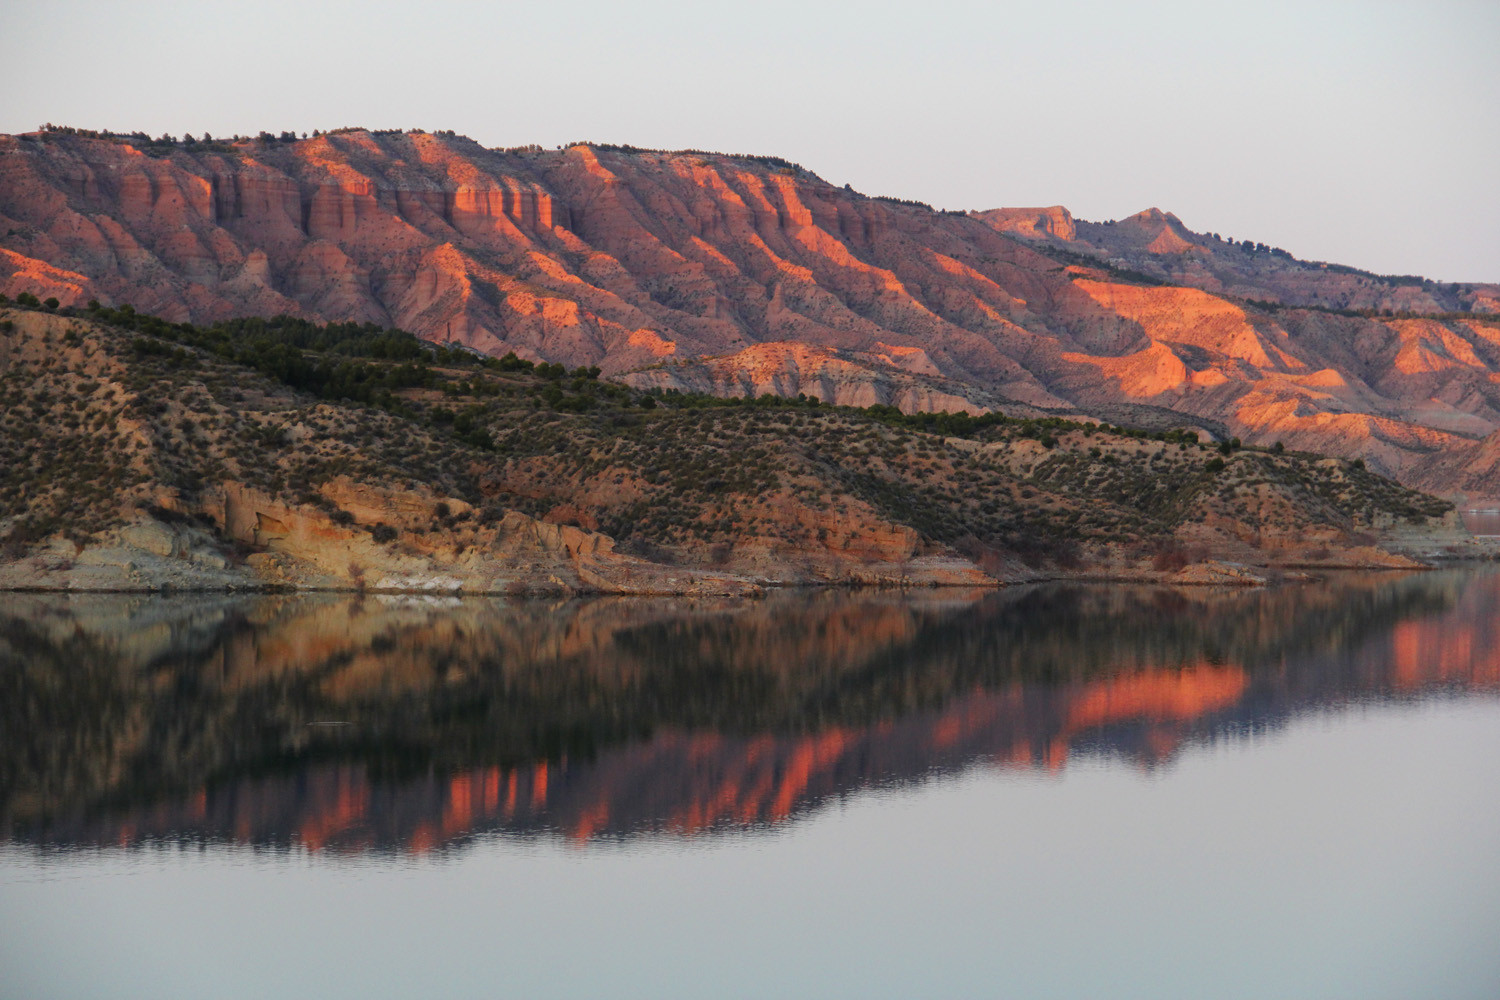 """Evening Reflection"" - Embalse de Negratin, Altiplano, Granada - L02075"